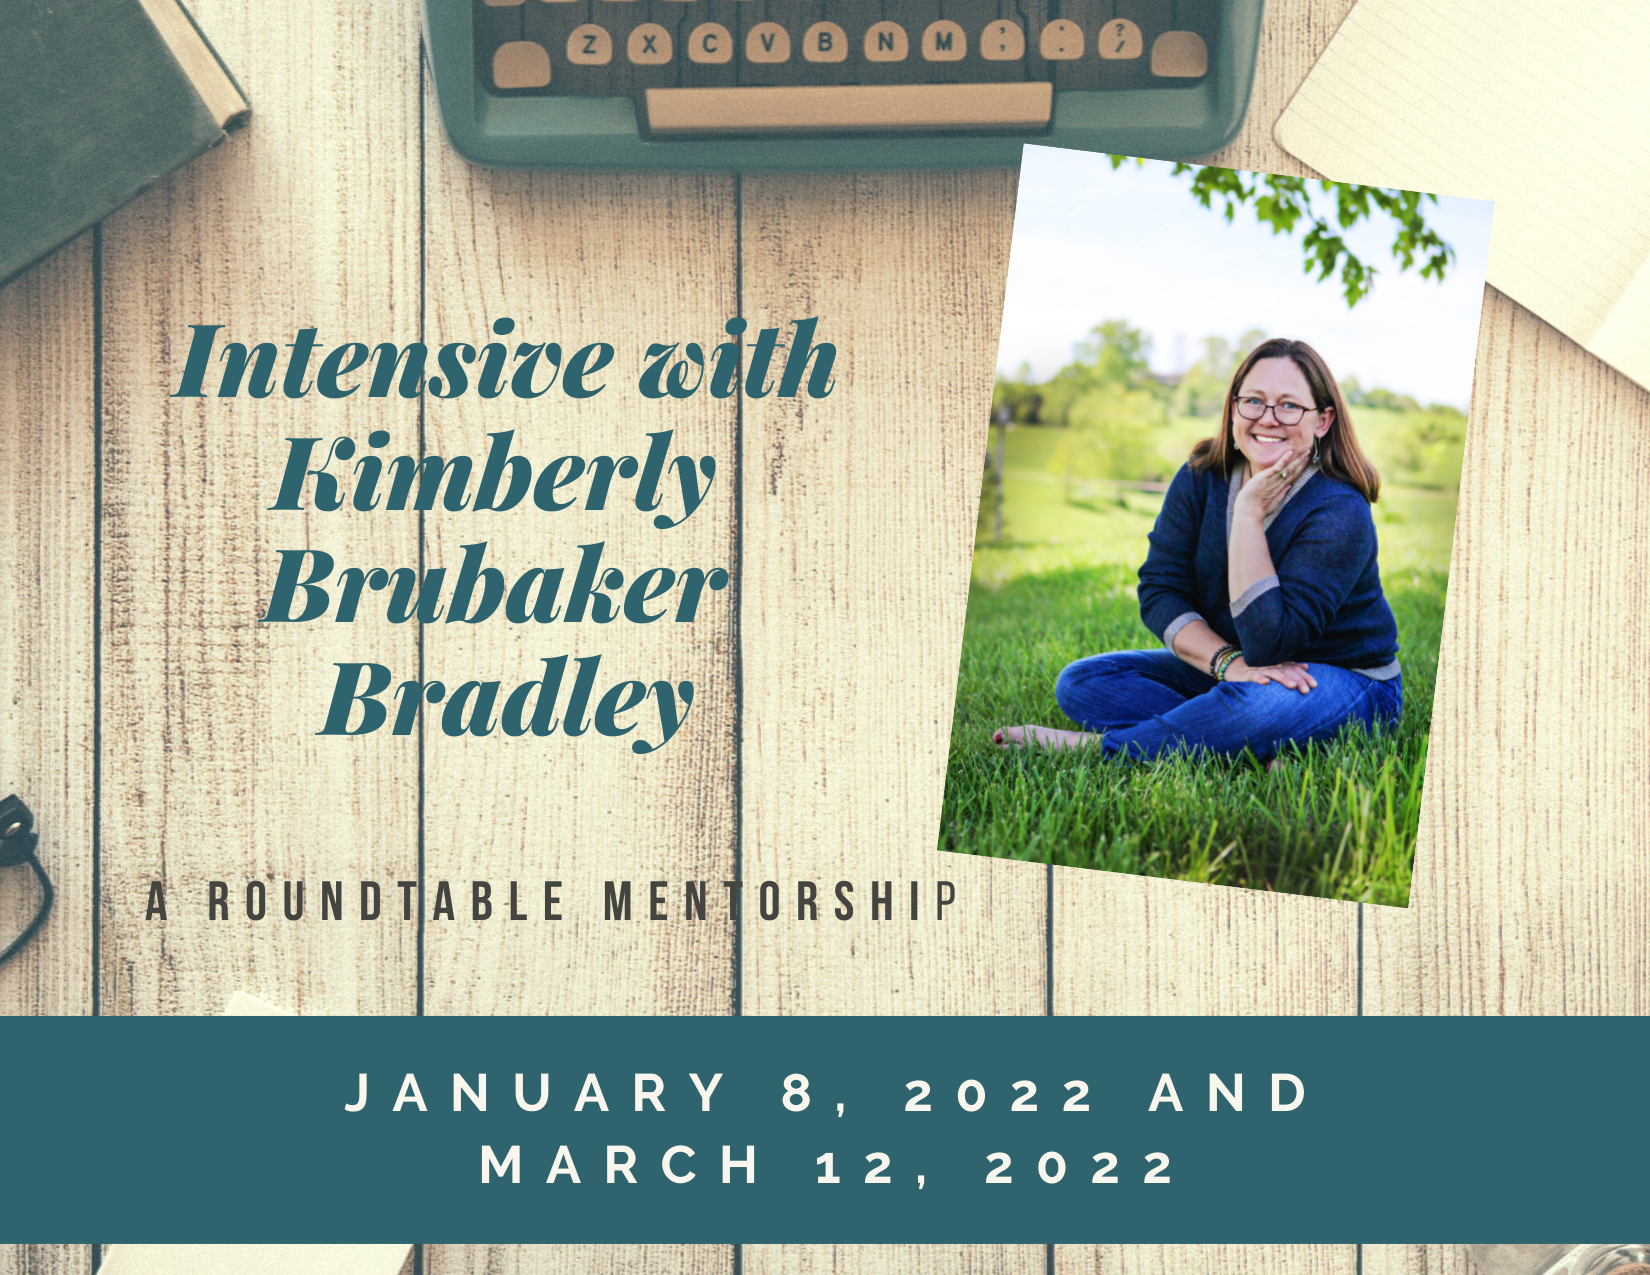 More info on this amazing opportunity at https://indiana.scbwi.org/events/intensive-with-kimberly-brubaker-bradley/